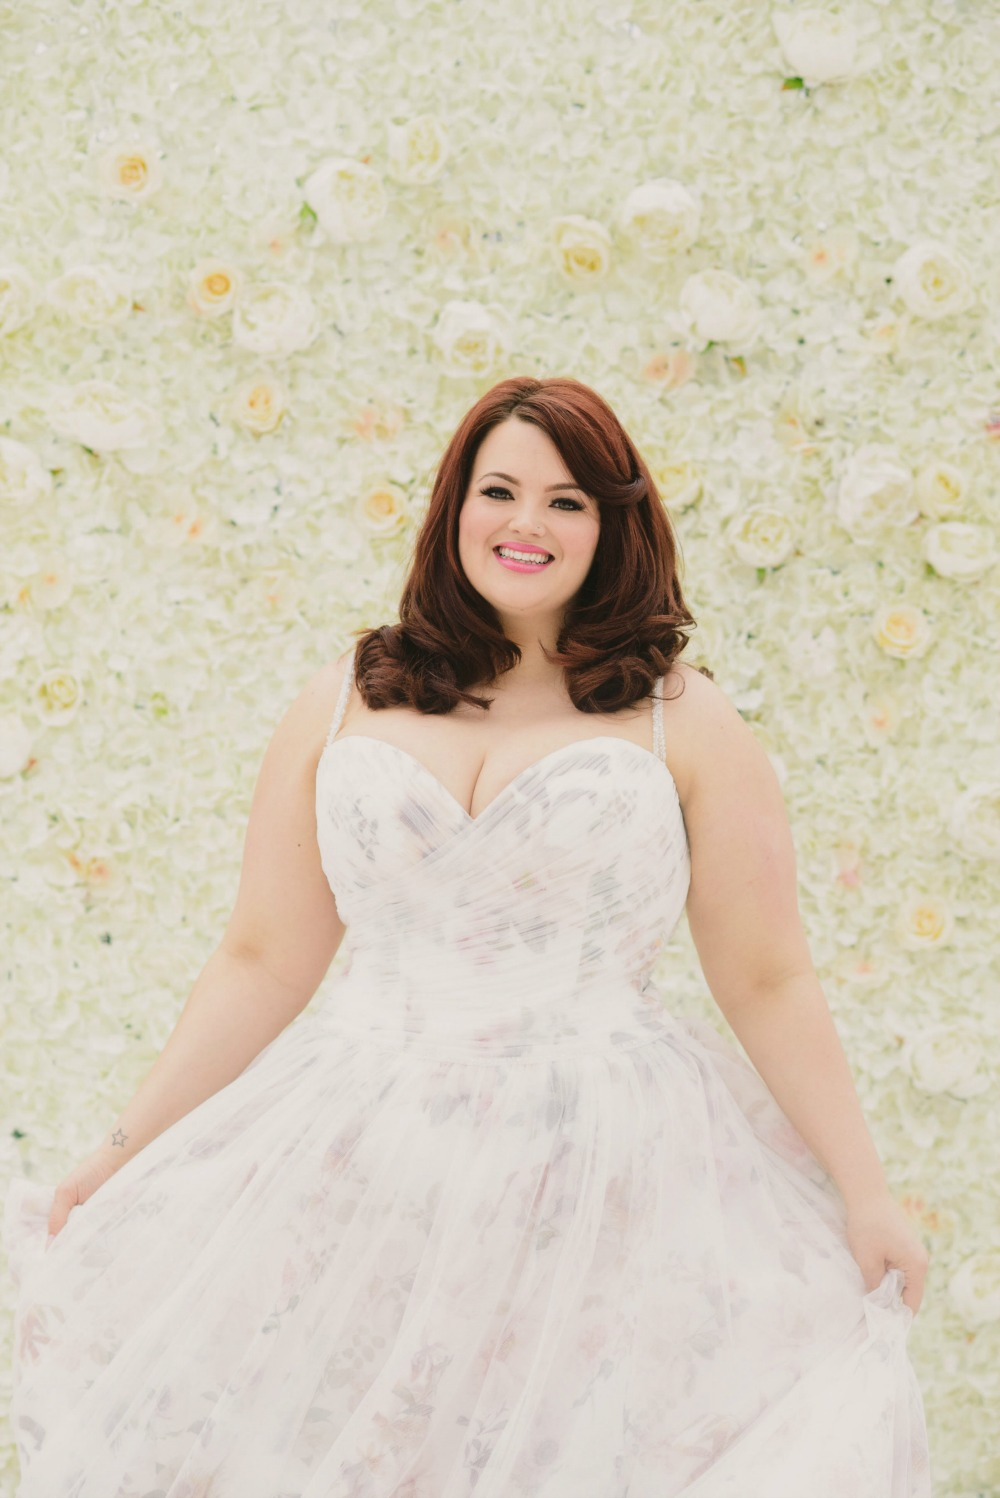 Plus size bride wedding dress.jpg